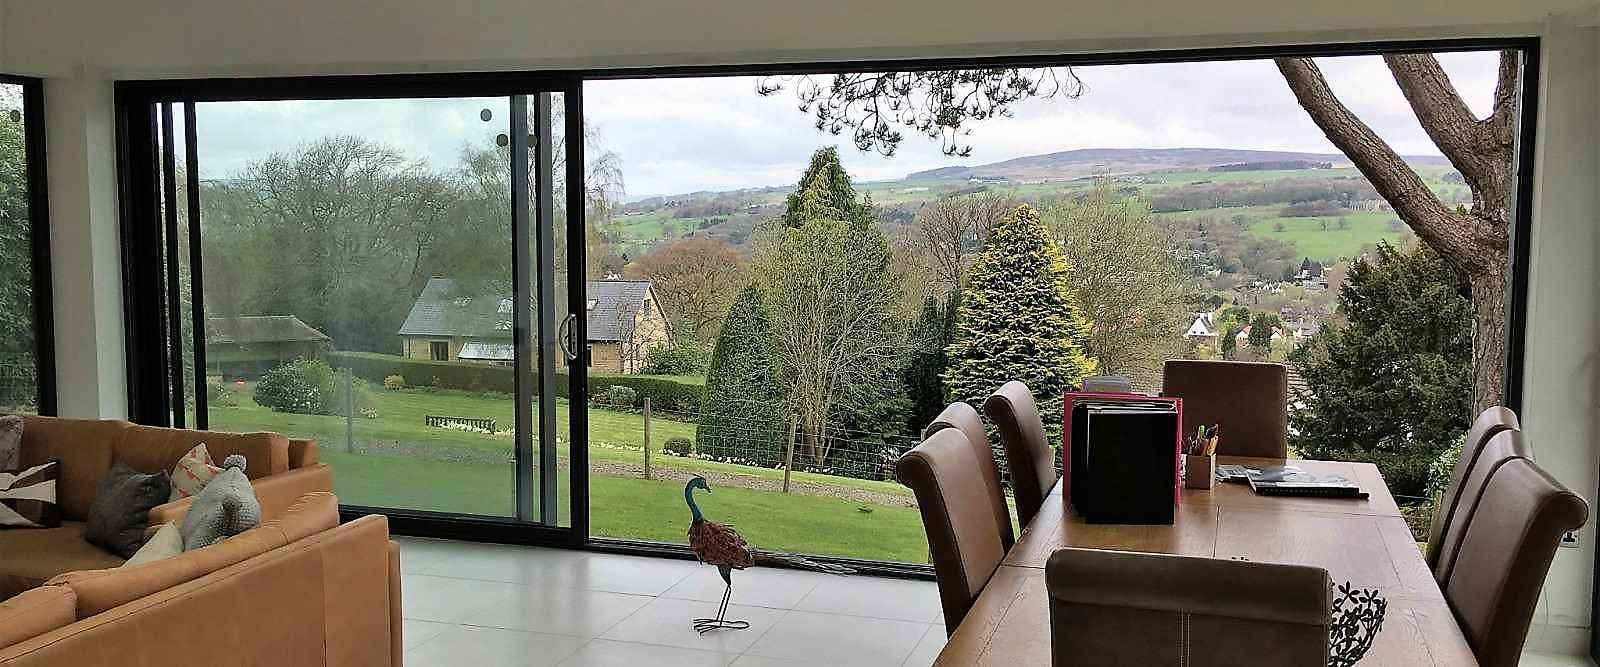 Contemporary Sliding patio doors installed in Ilkley Yorkshire